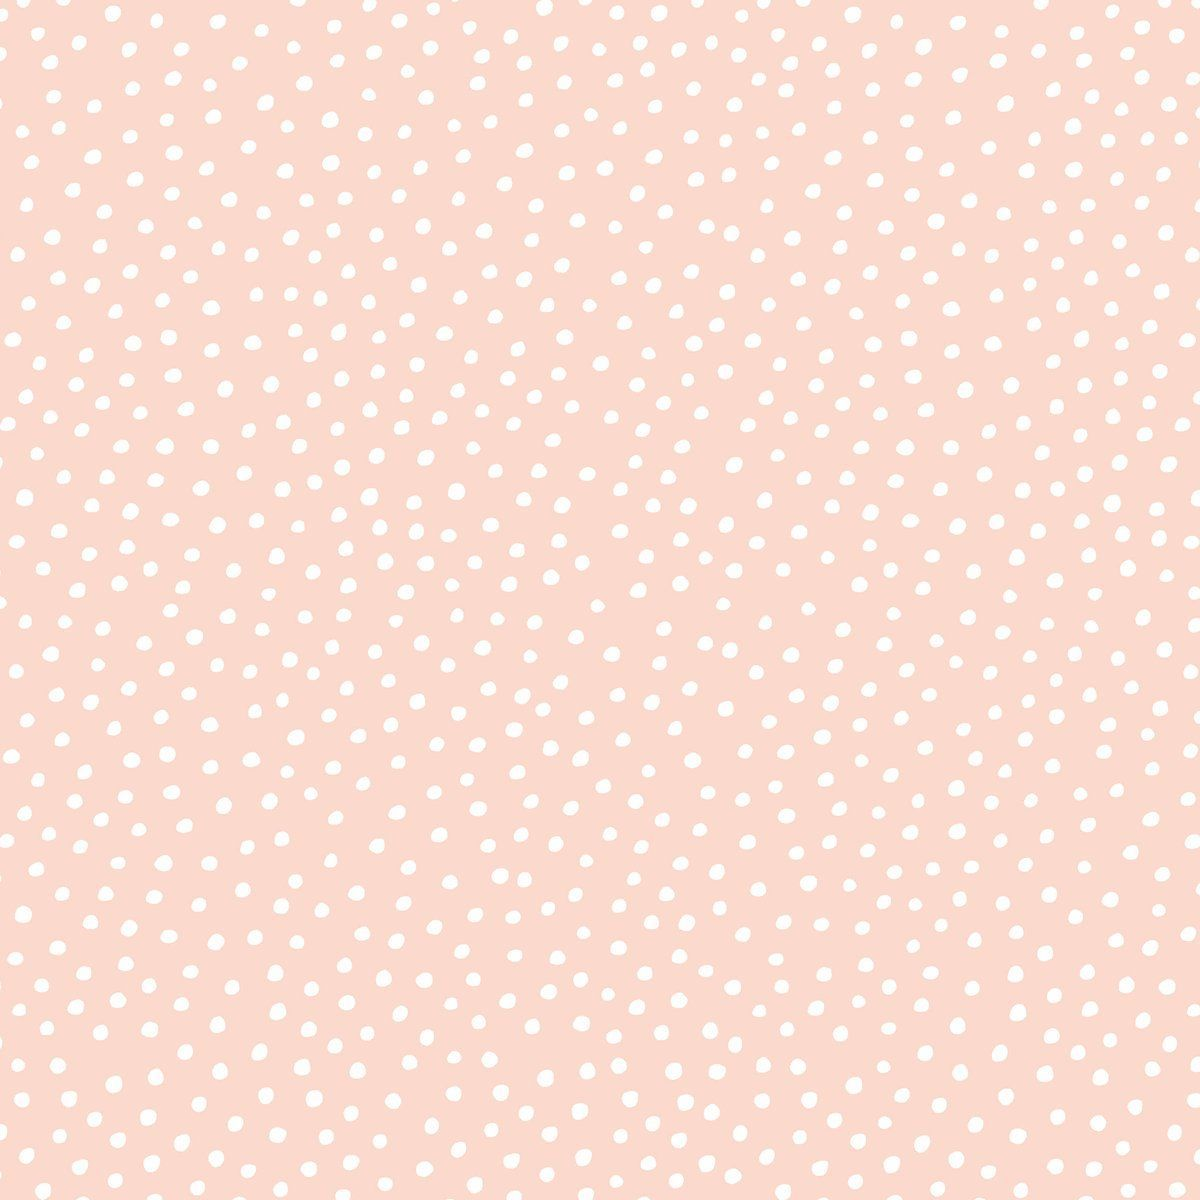 Aesthetic Pink Patterns Wallpapers Wallpaper Cave